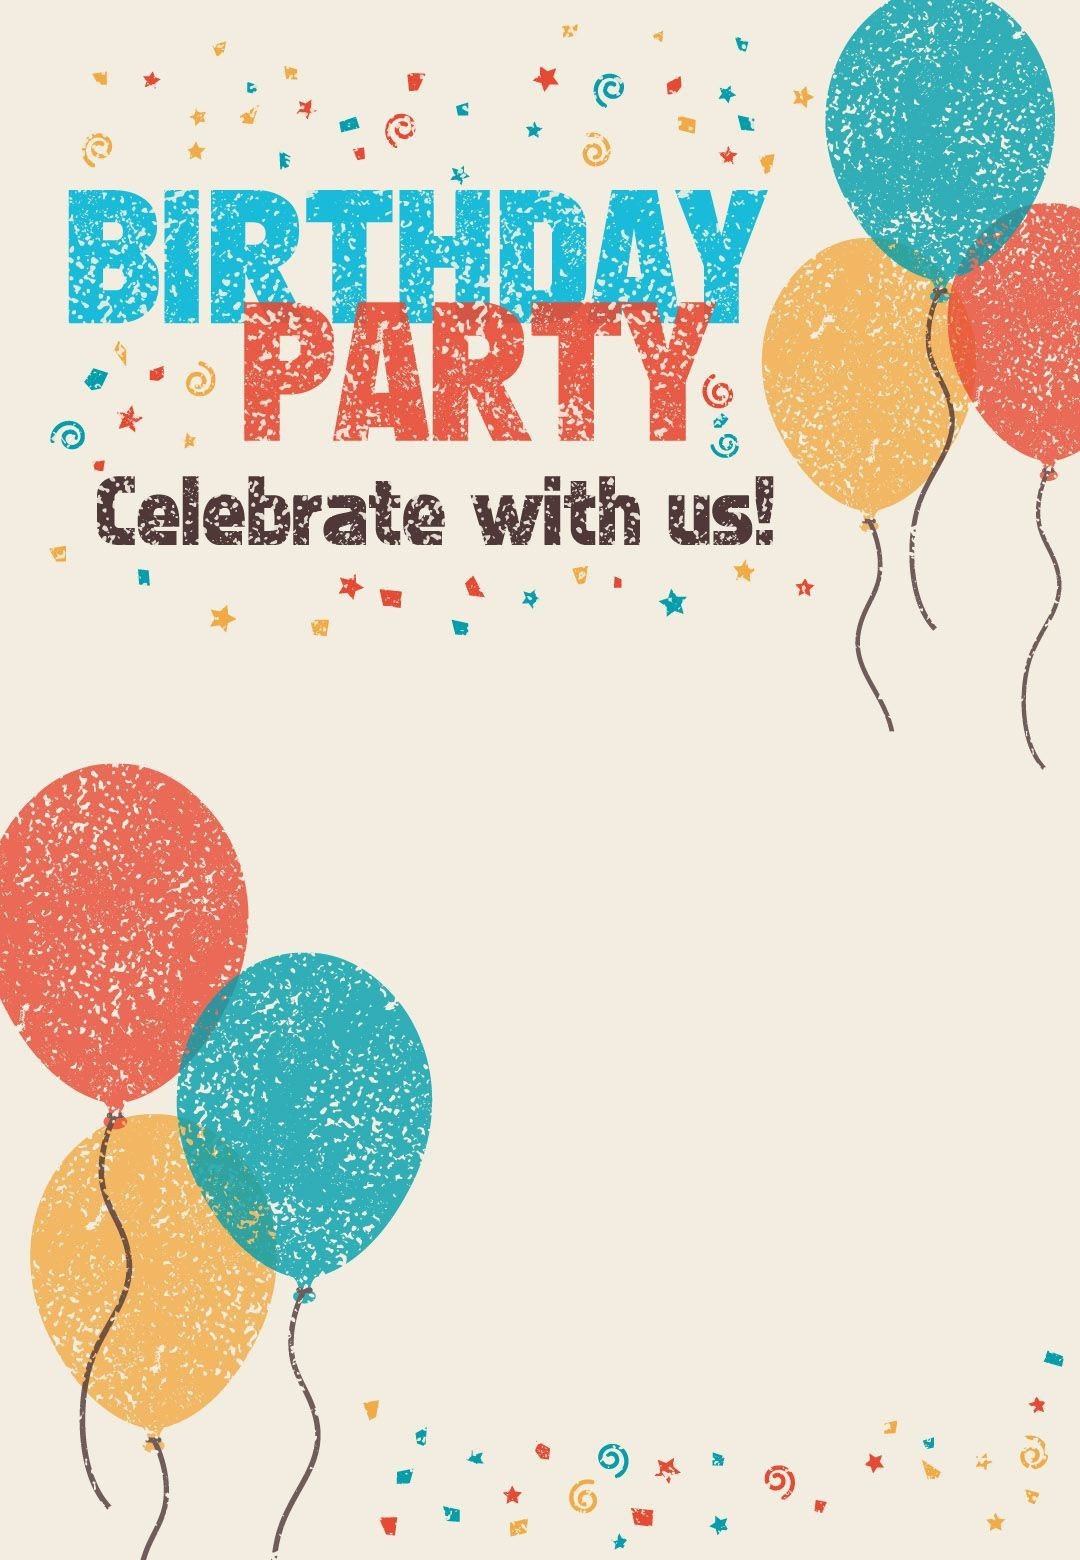 004 Fearsome Birthday Card Template Free Inspiration  Invitation Photoshop Download WordFull